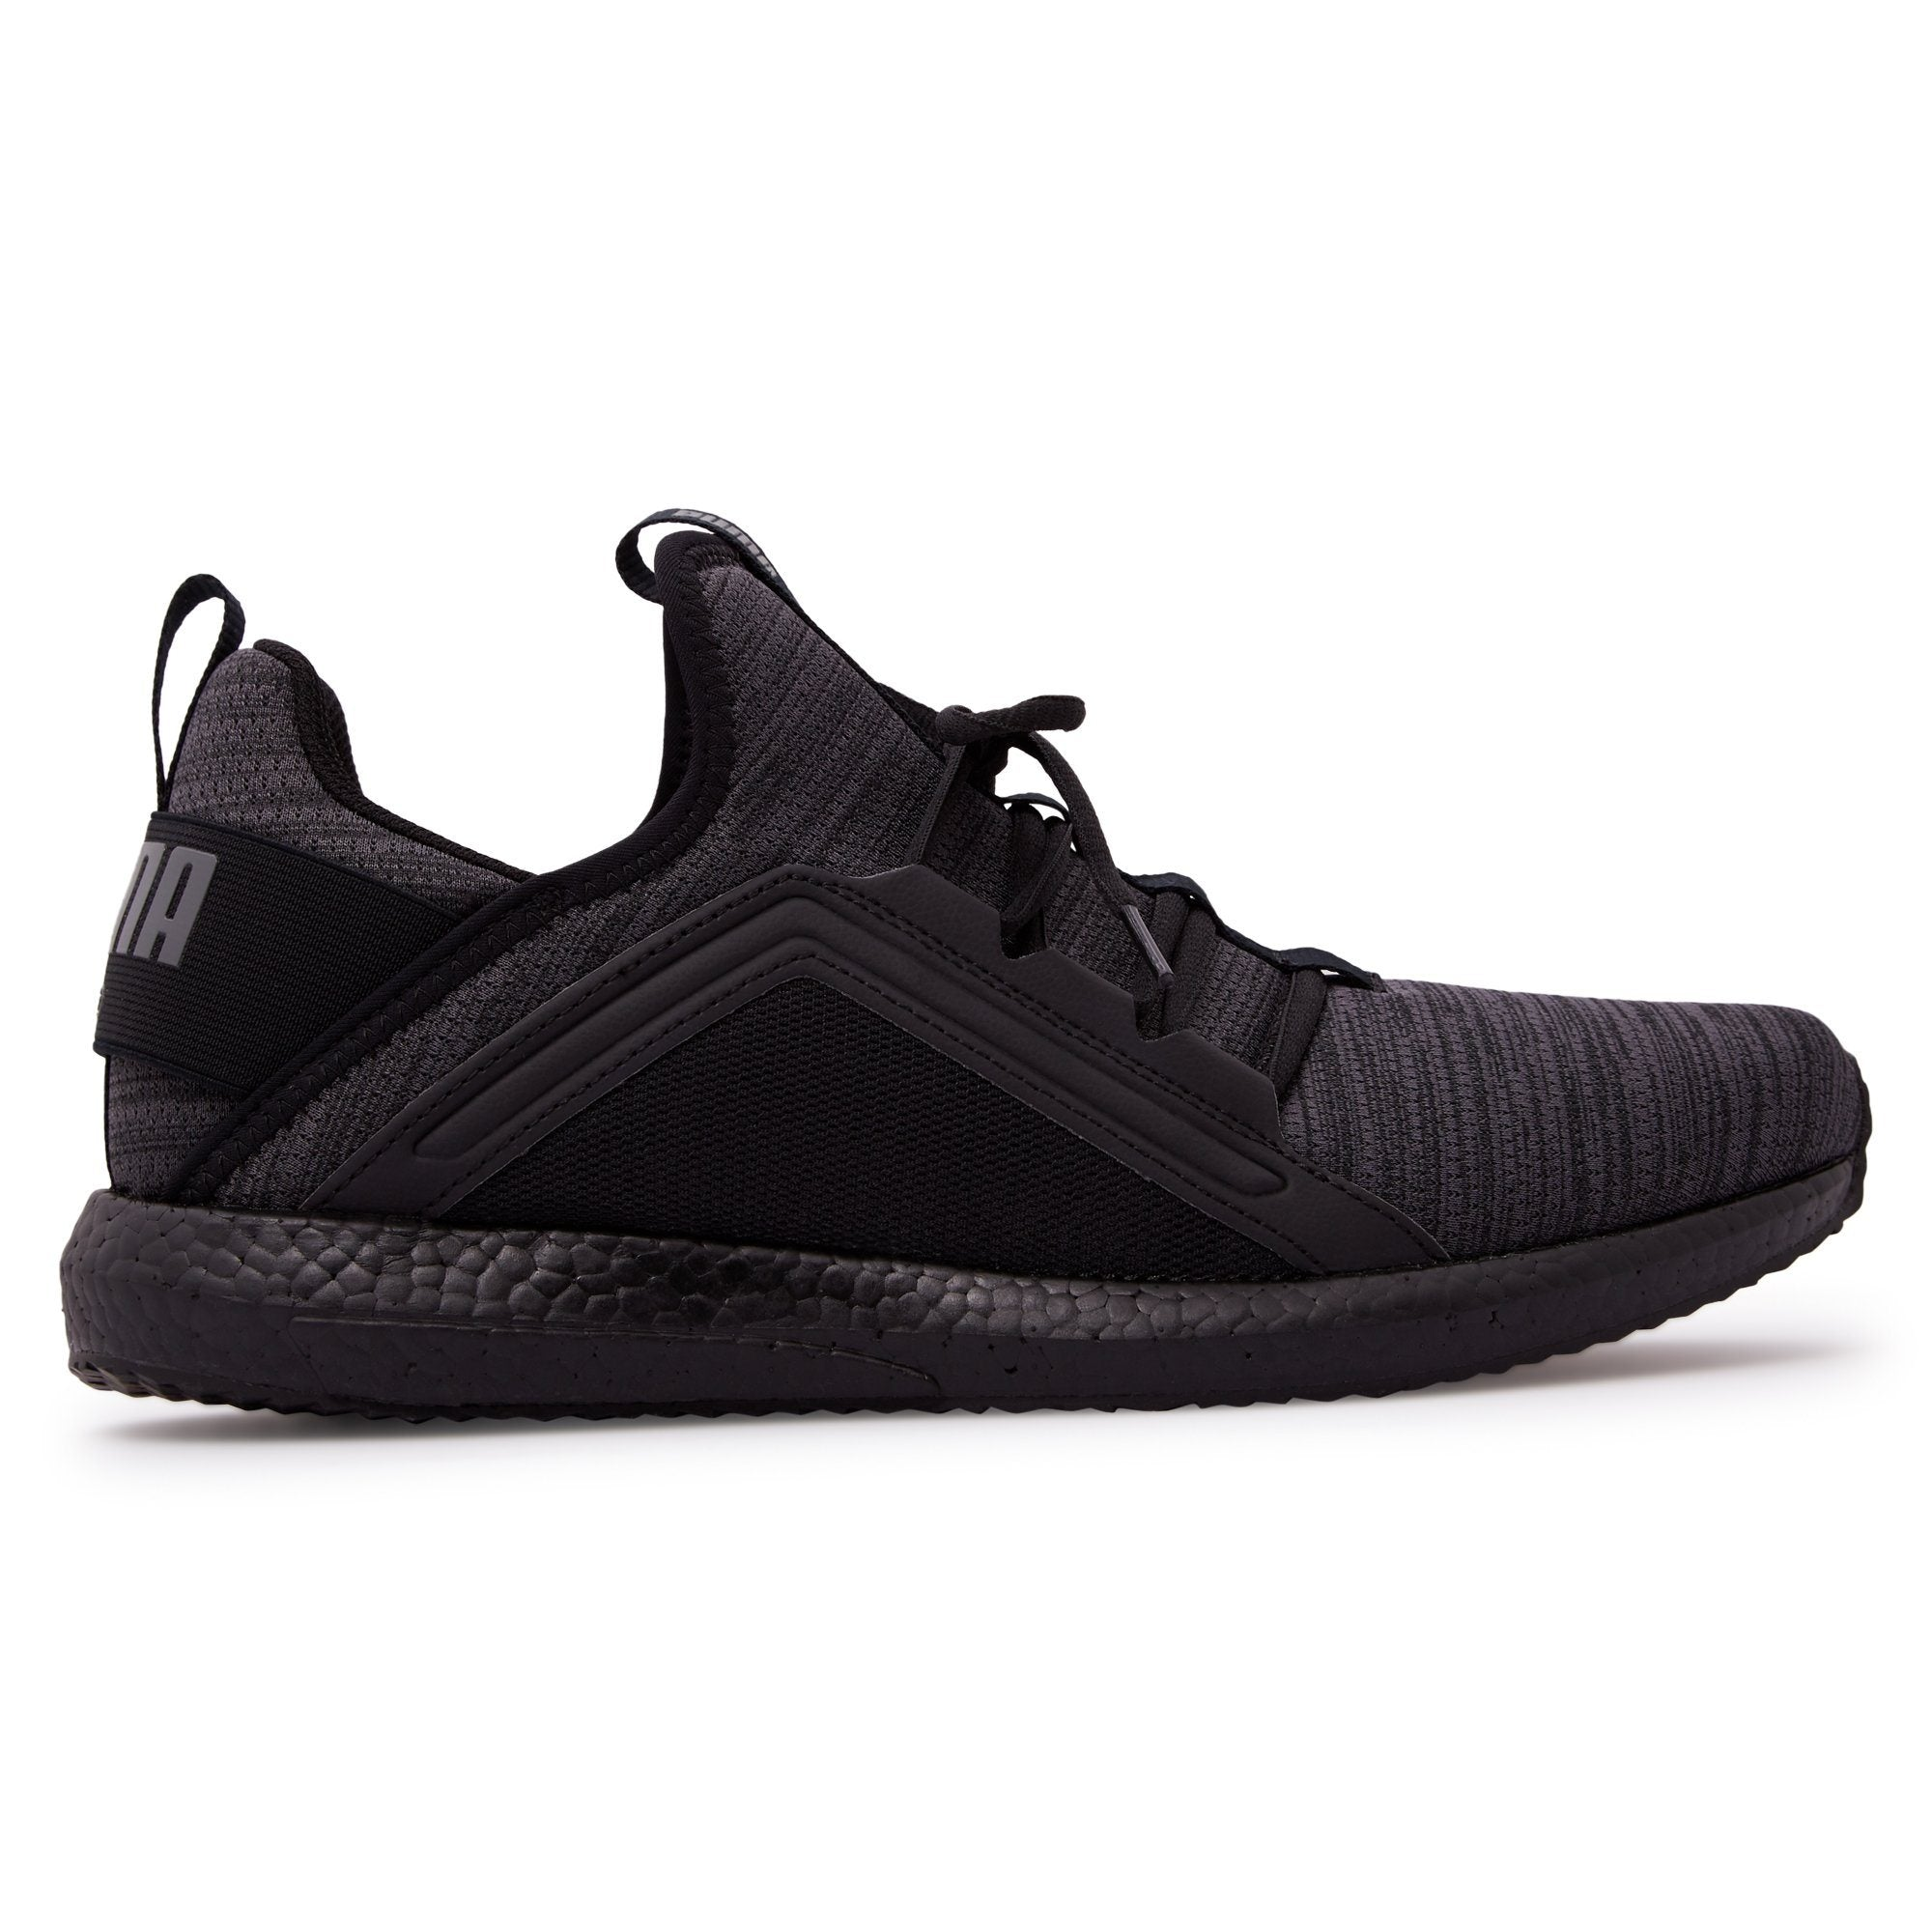 Puma Men's Mega Nrgy Heather Knit - Iron Gate/Black Footwear Puma